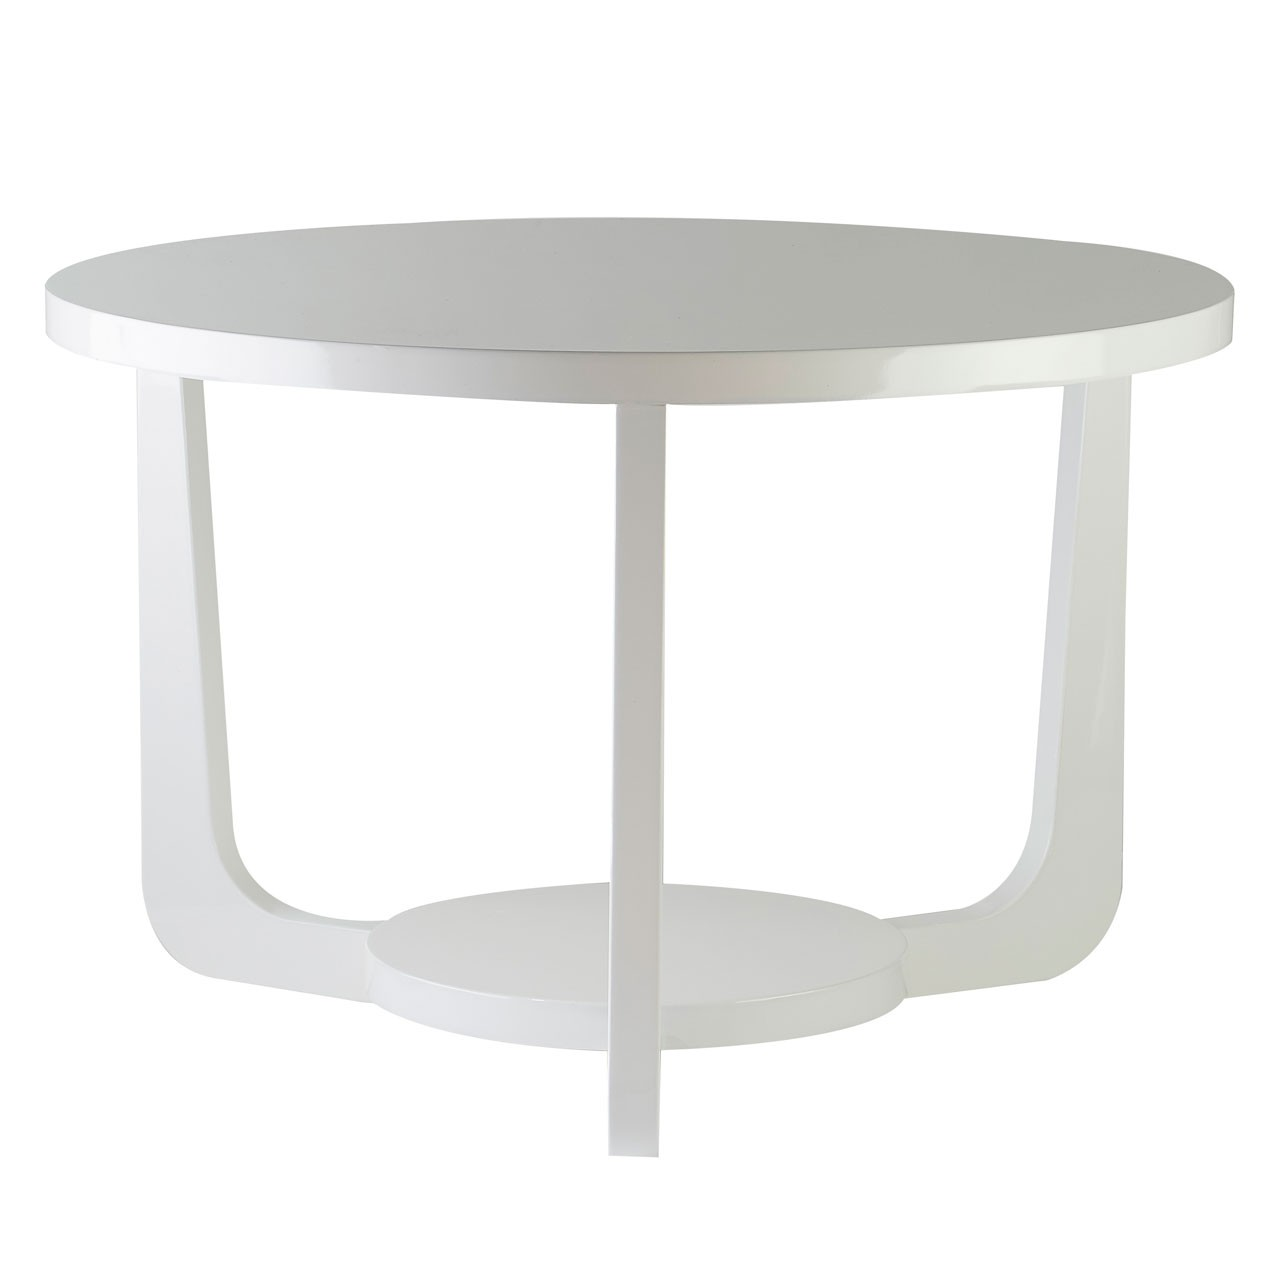 Side Table MDF White High Gloss Stylish New